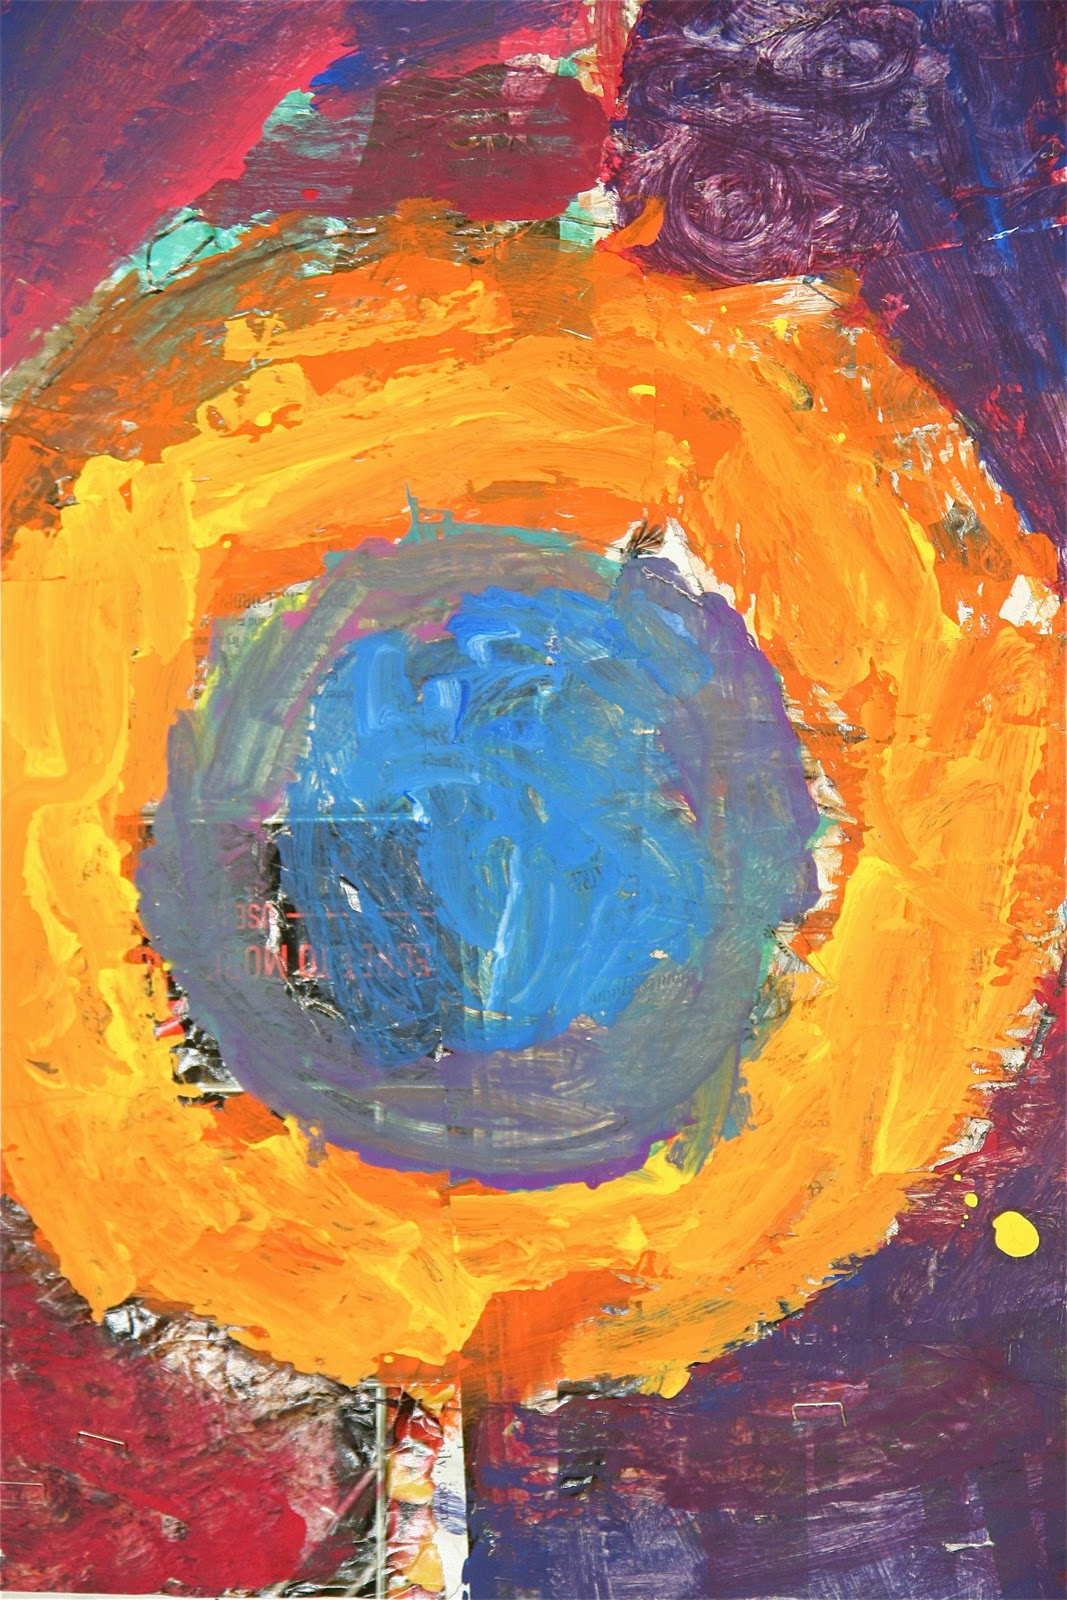 One 4th grader's approach to a target painting — inspired by Jasper Johns, but clearly marked by his or her own individuality.